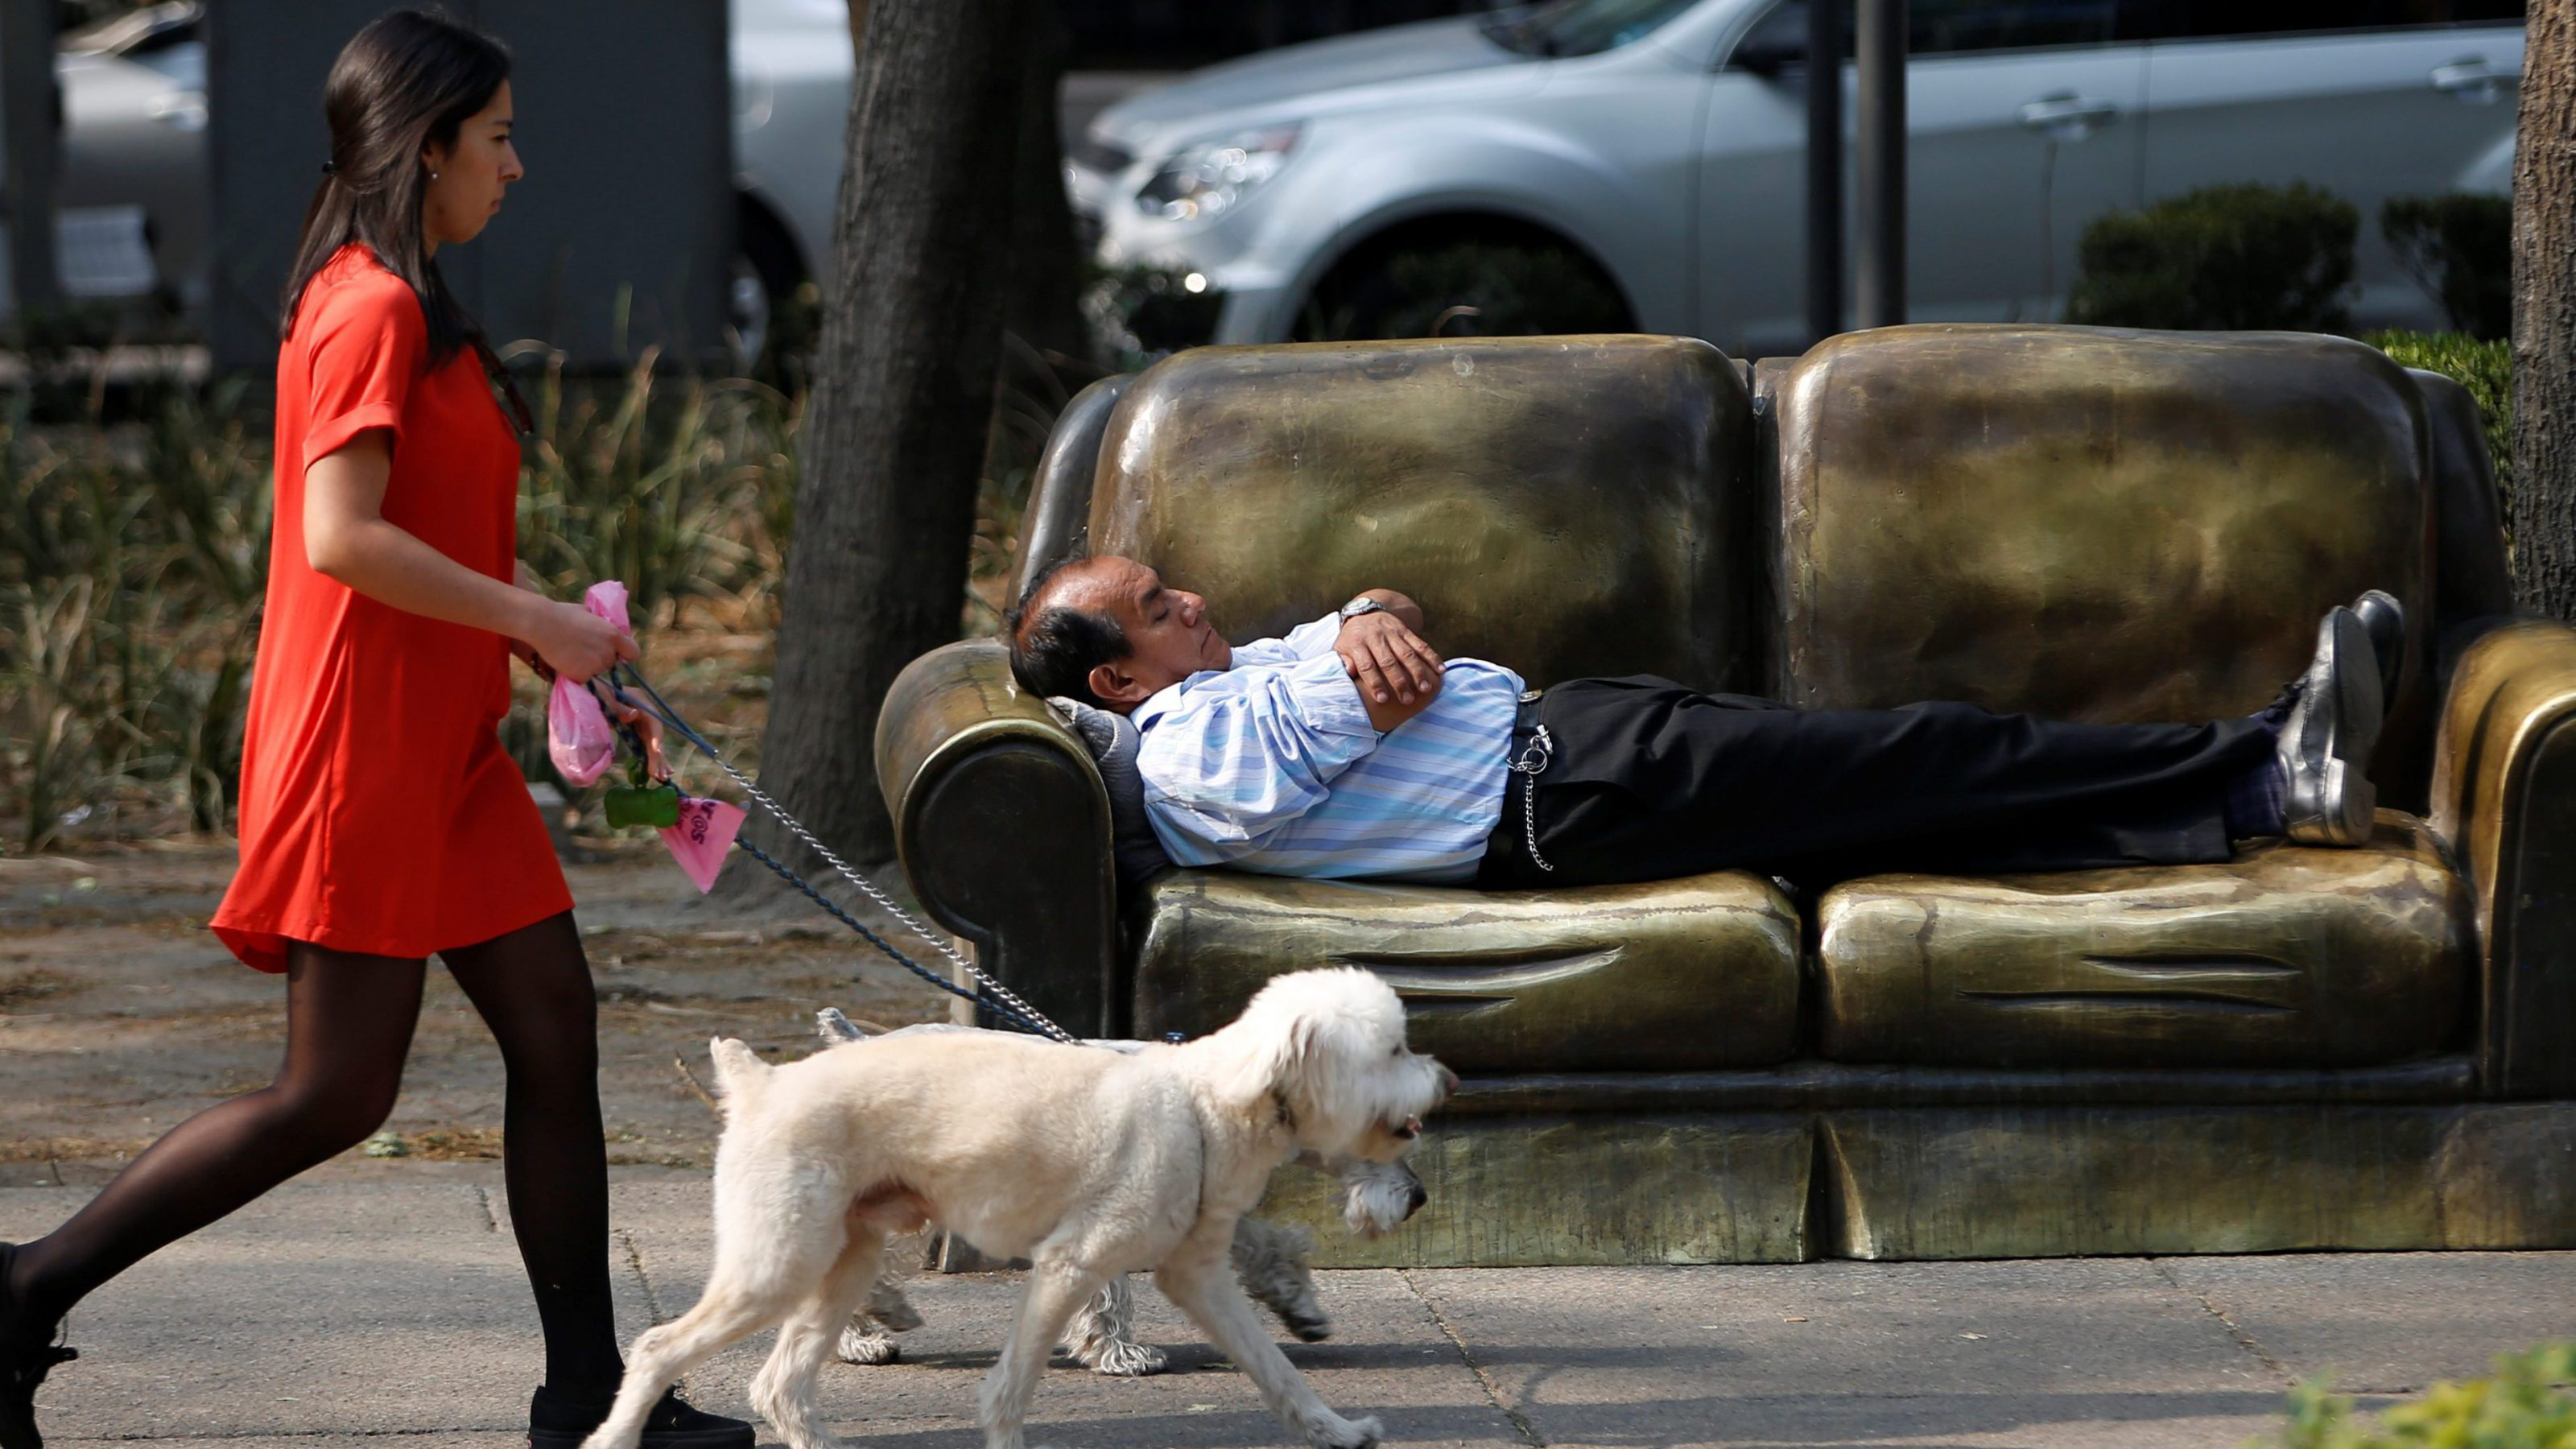 A man rests on a park bench in the shape of a sofa as a woman walks past with two dogs